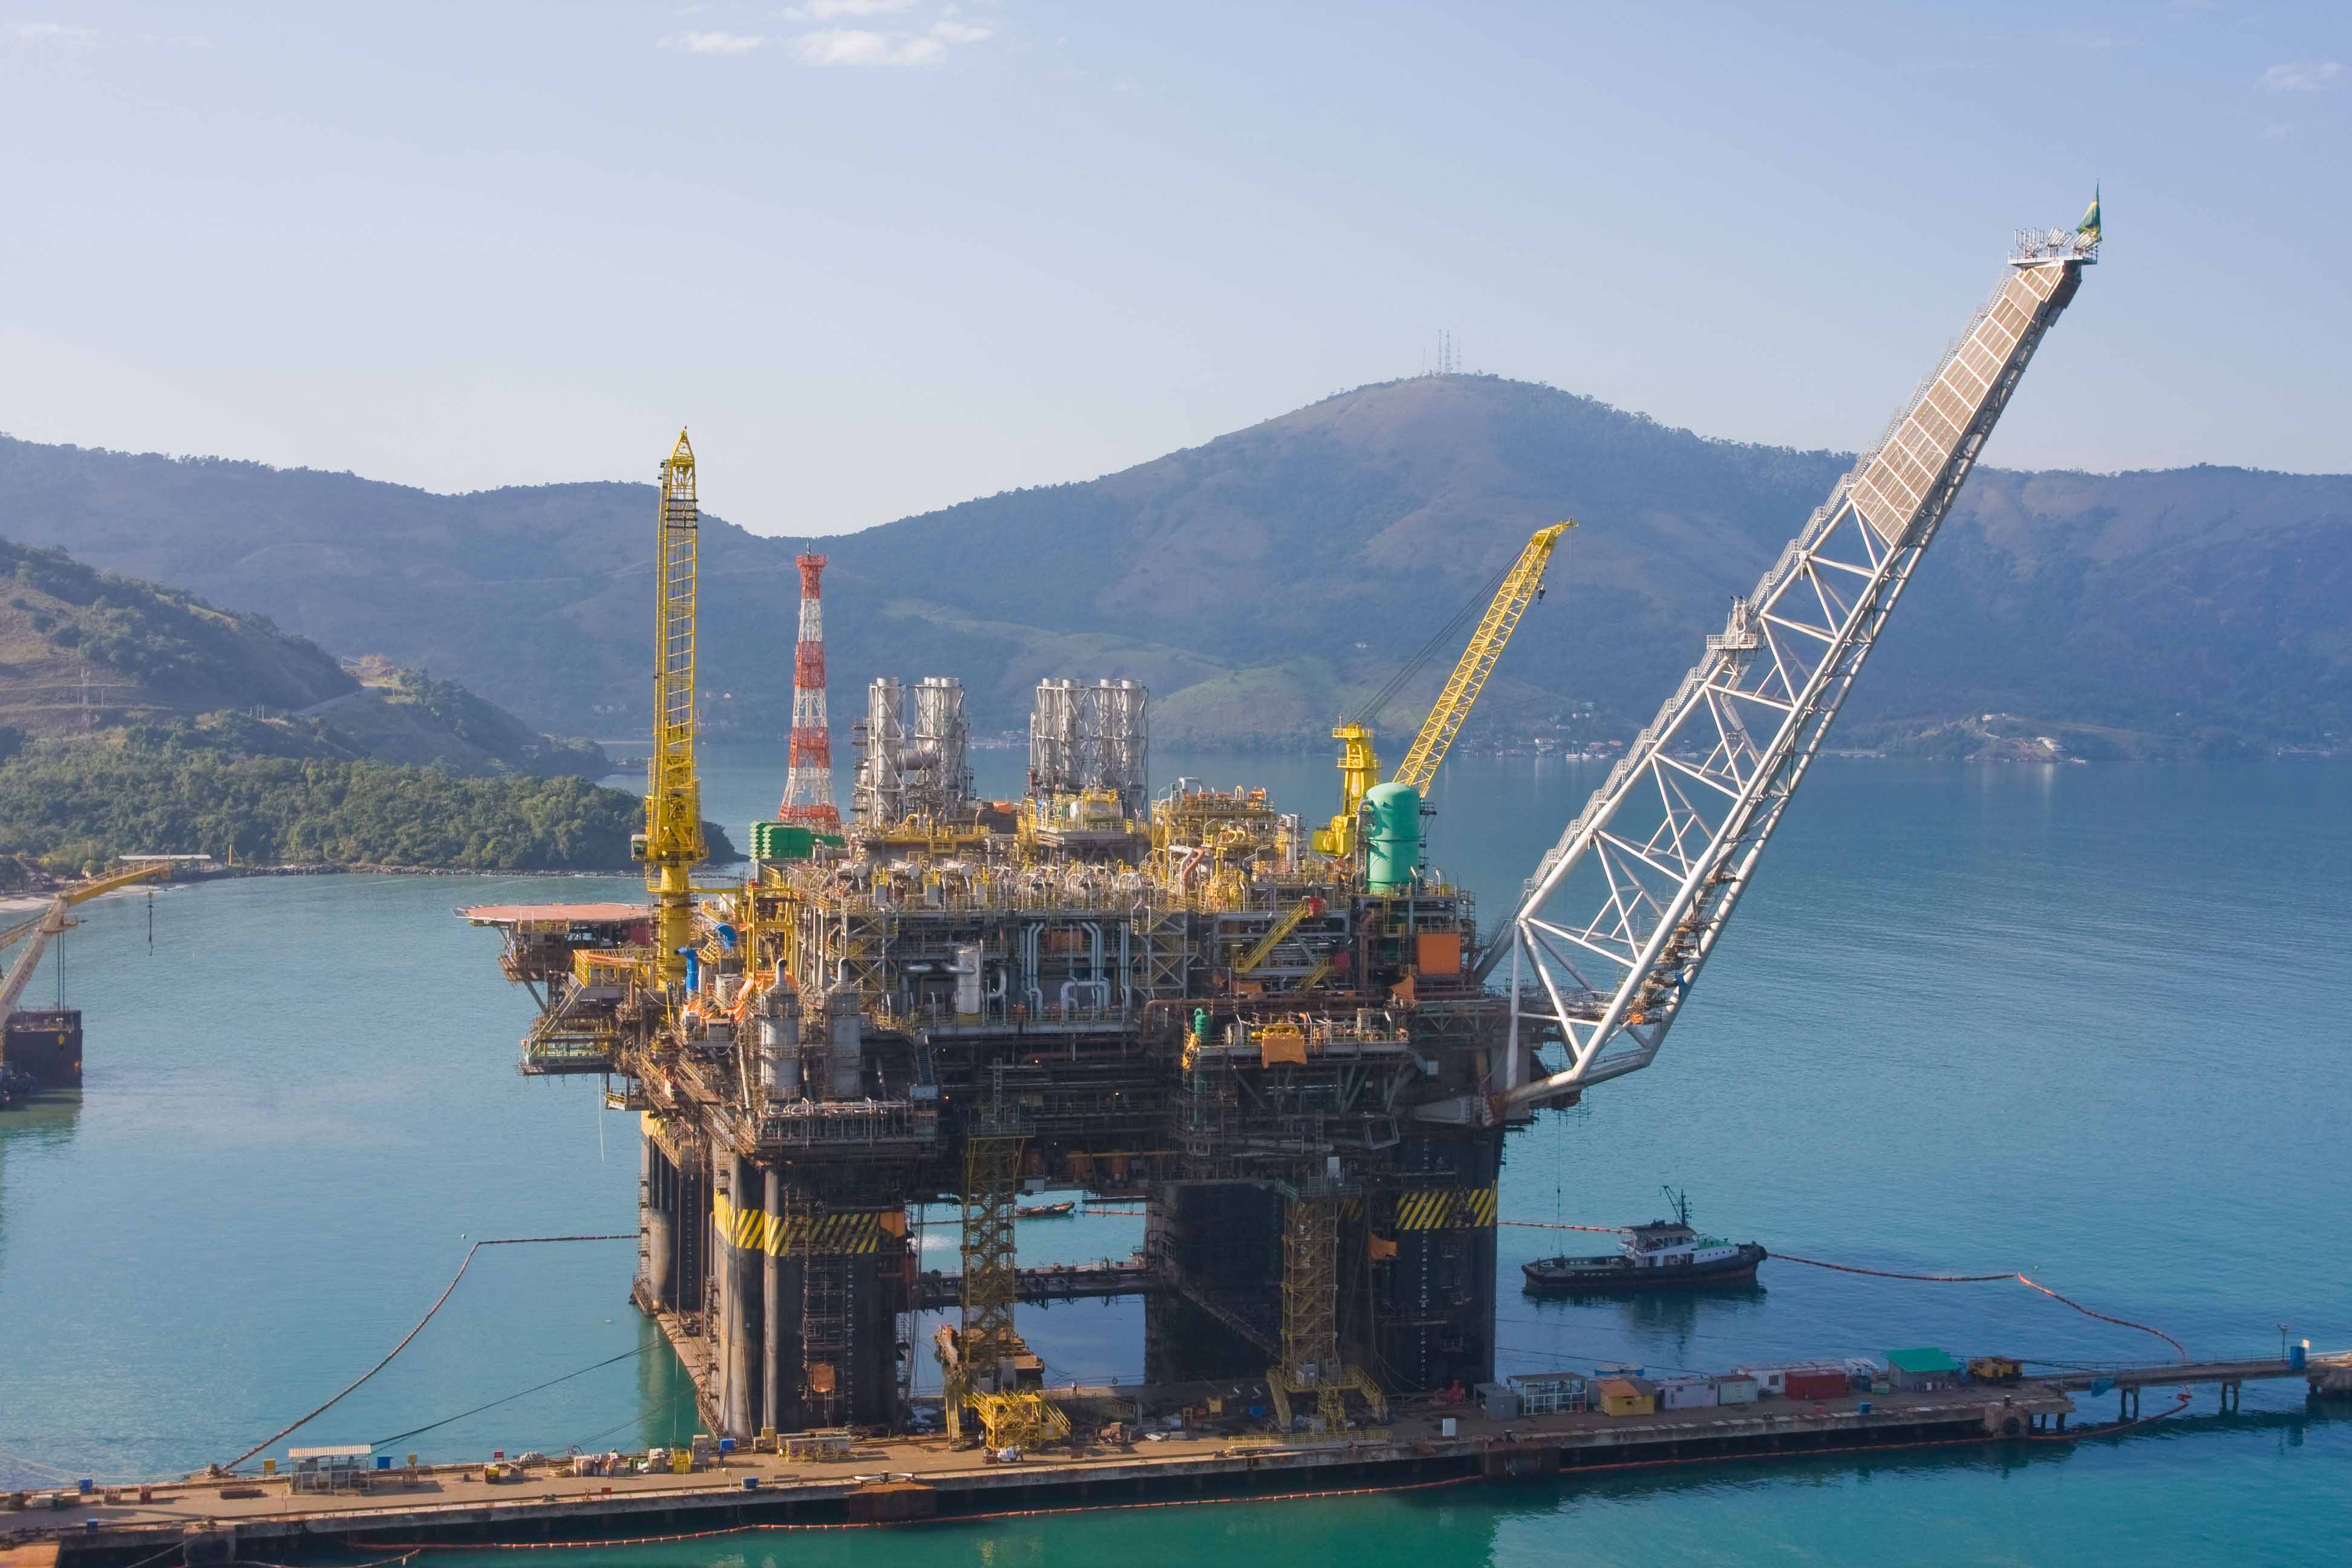 Petrobras' P-51 floating production unit in Rio de Janeiro. The company is focused on divesting and... [+] deleveraging and will not shy away from letting foreign companies partner more closely in its prized deep sea oil fields.